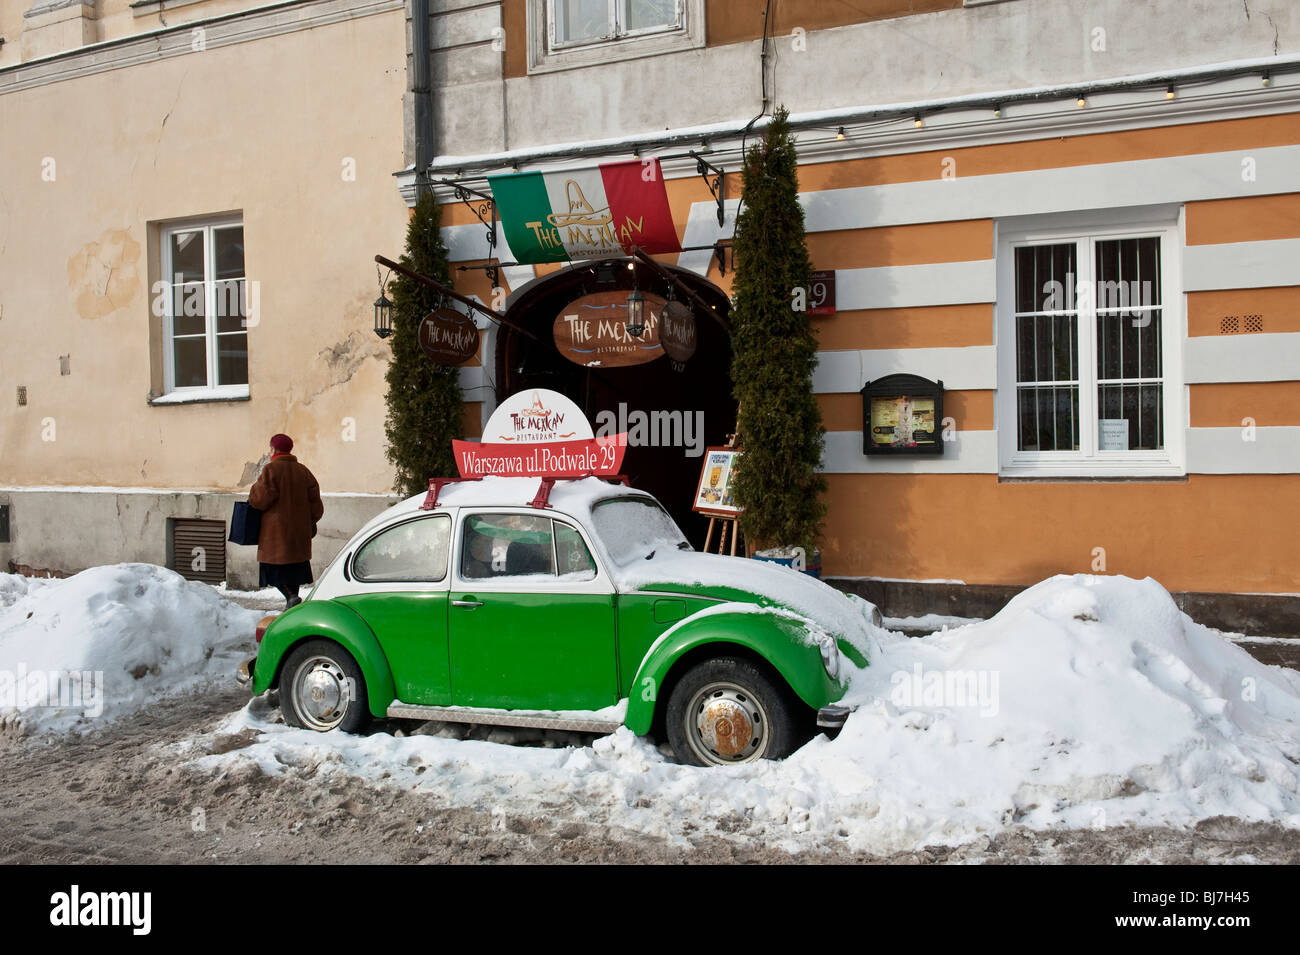 A VW car parked in a snowdrift in Warsaw Old Town Poland - Stock Image